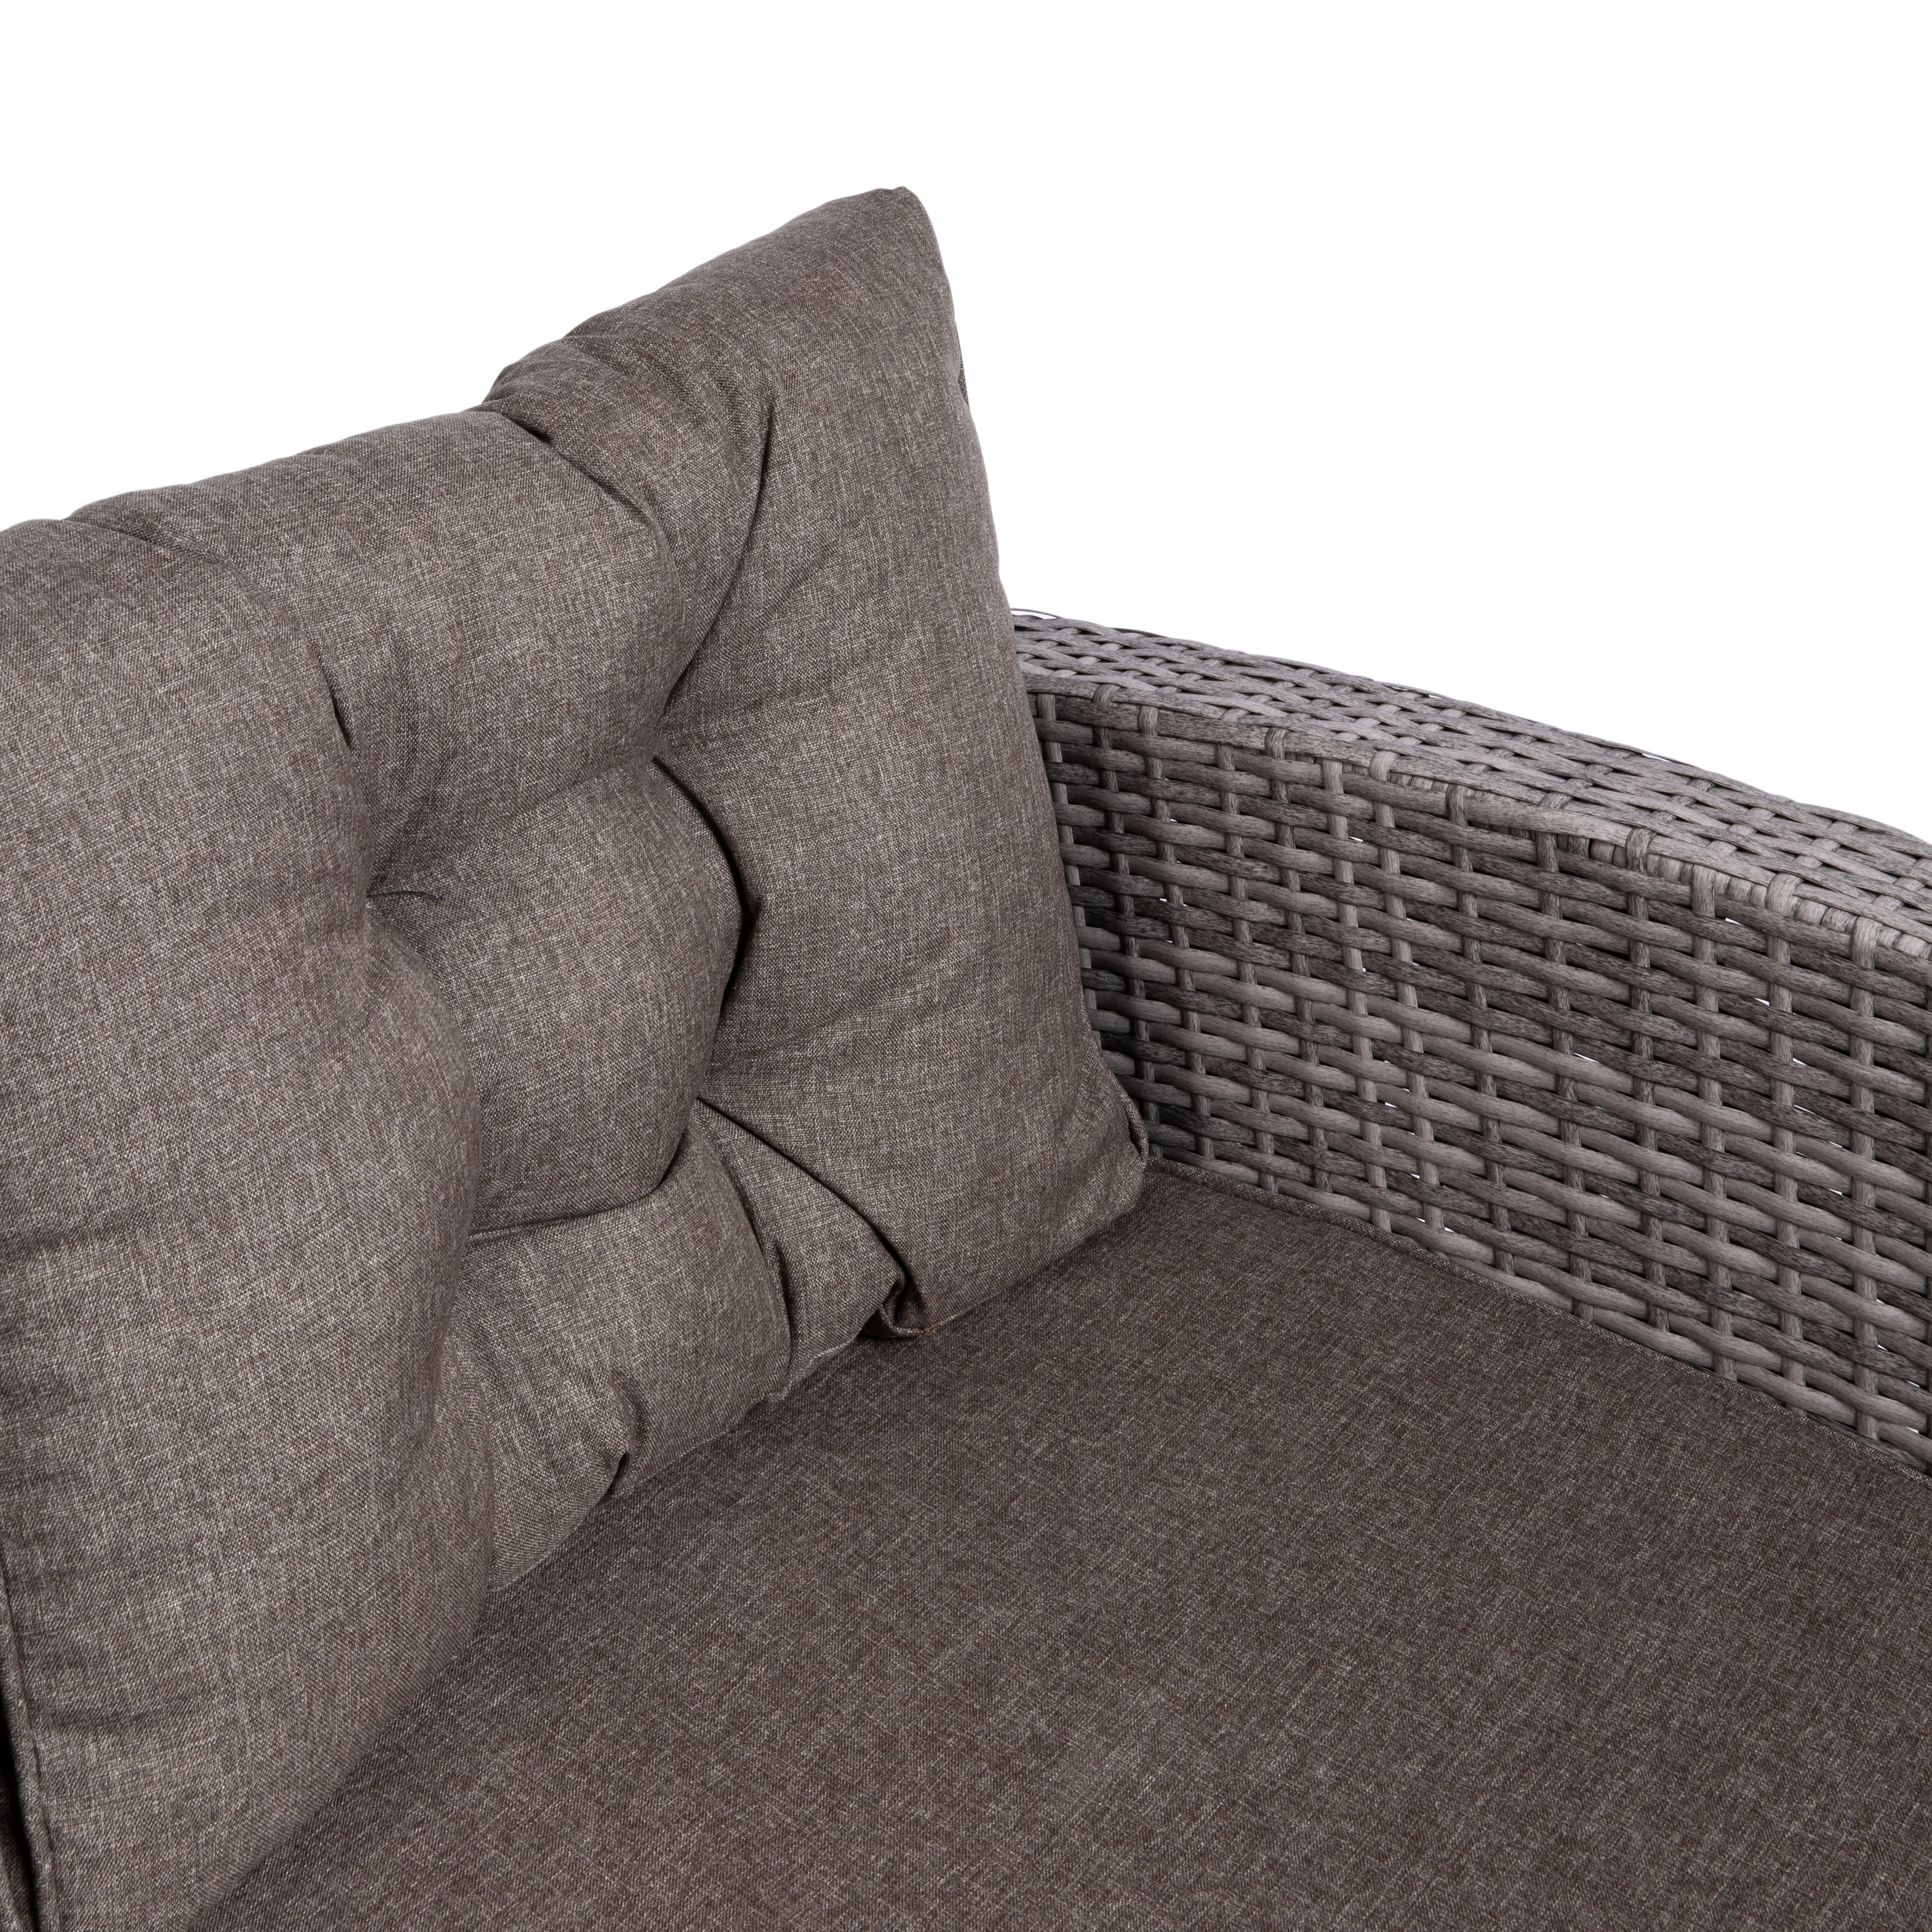 close up of KSP Caban couch cushion